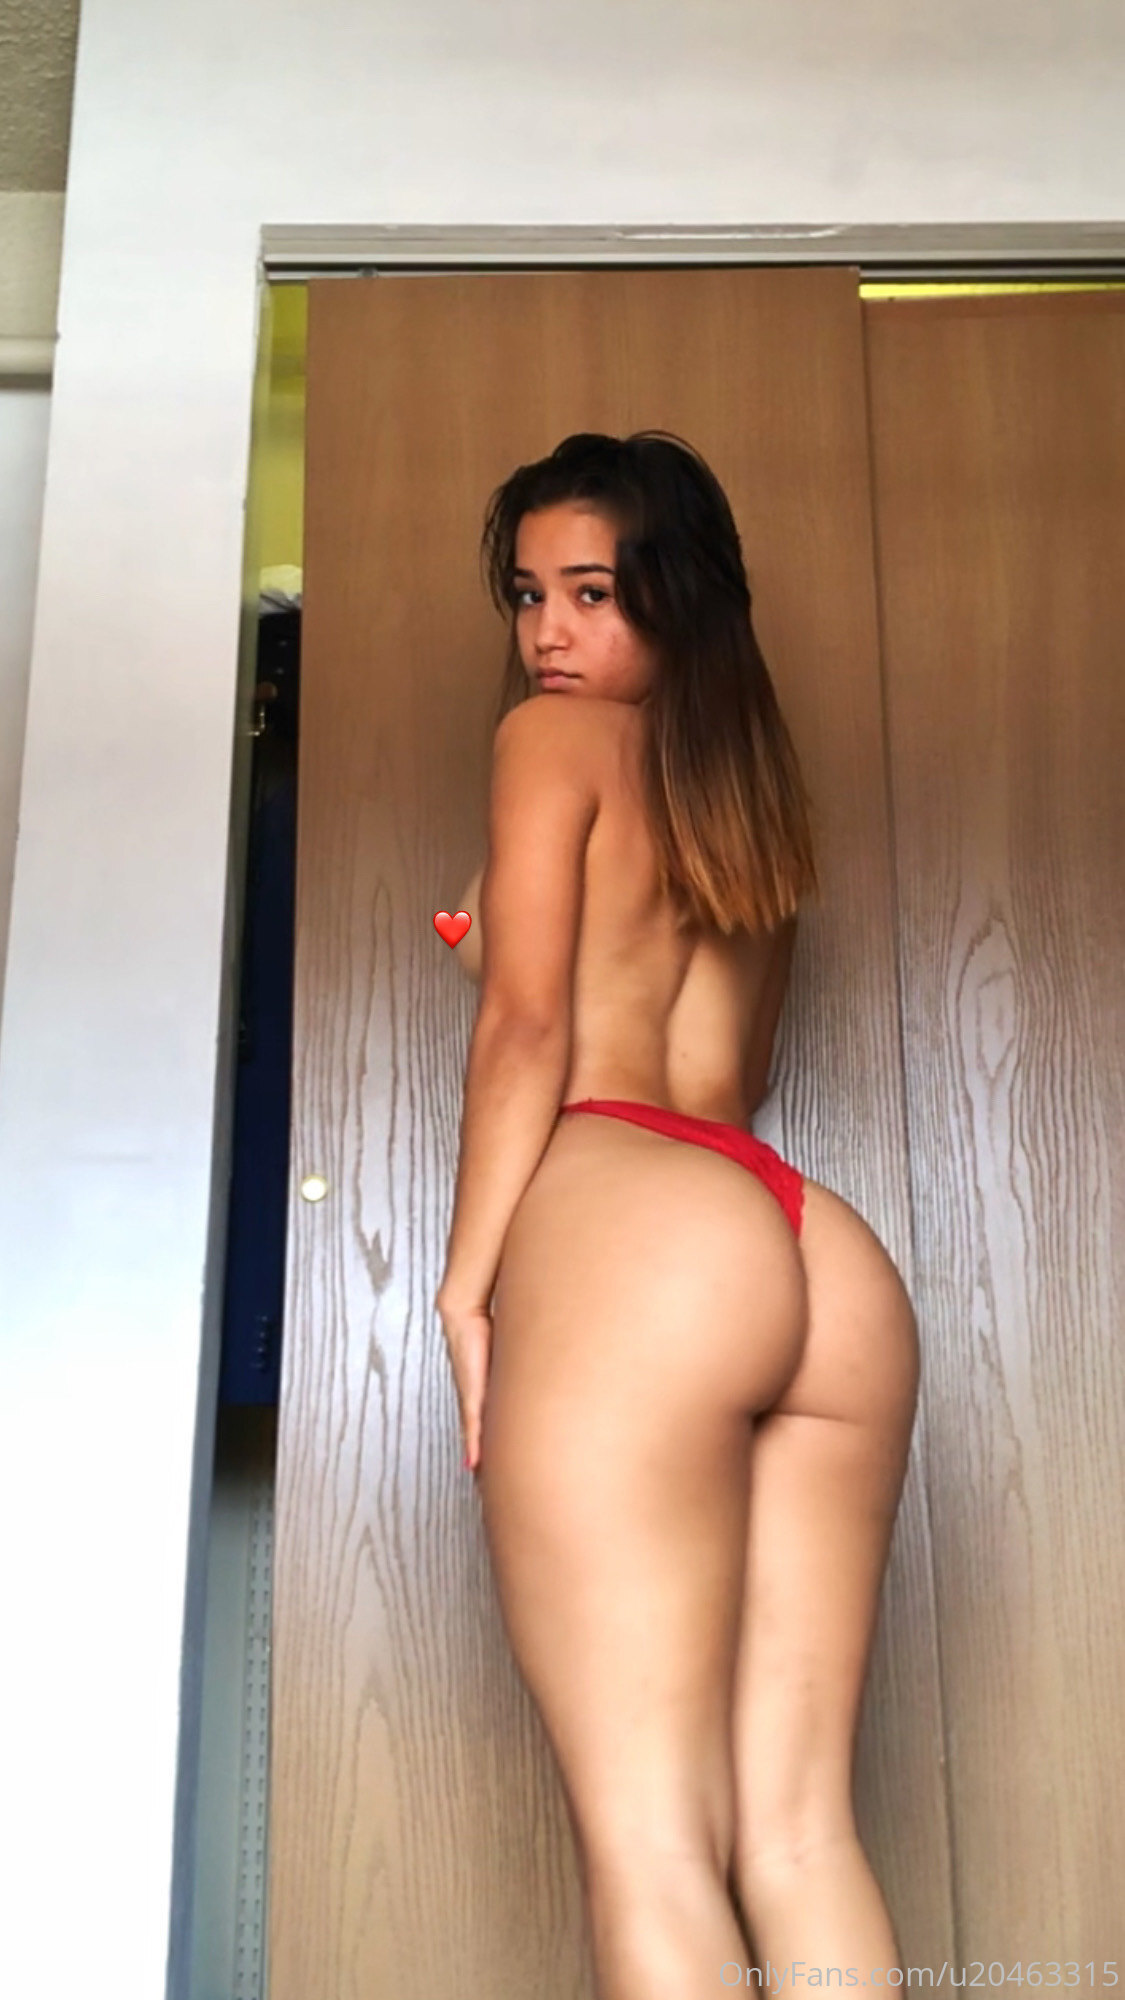 Caomi Madalis Caomi02 Teen Gallery Leaked Onlyfans